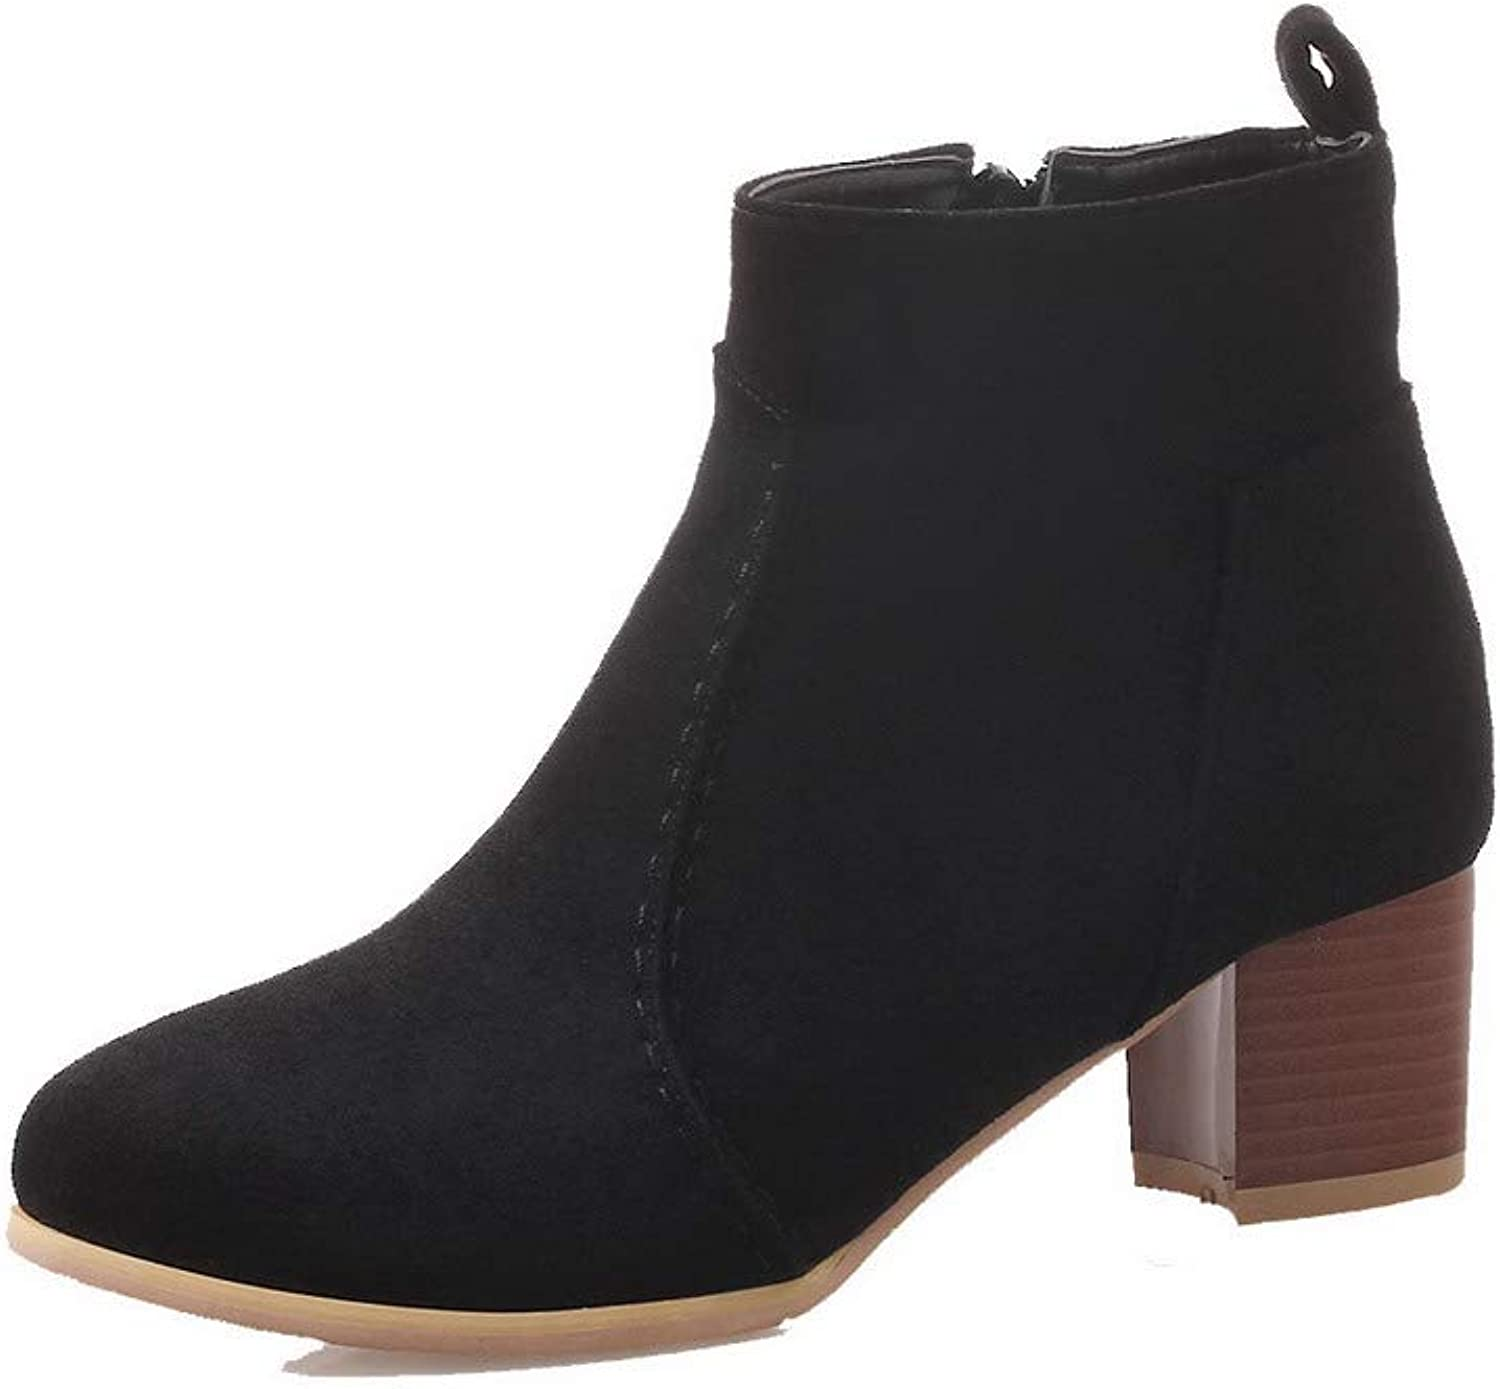 WeenFashion Women's Solid Kitten-Heels Closed-Toe Imitated Suede Zipper Boots, AMGXX122409